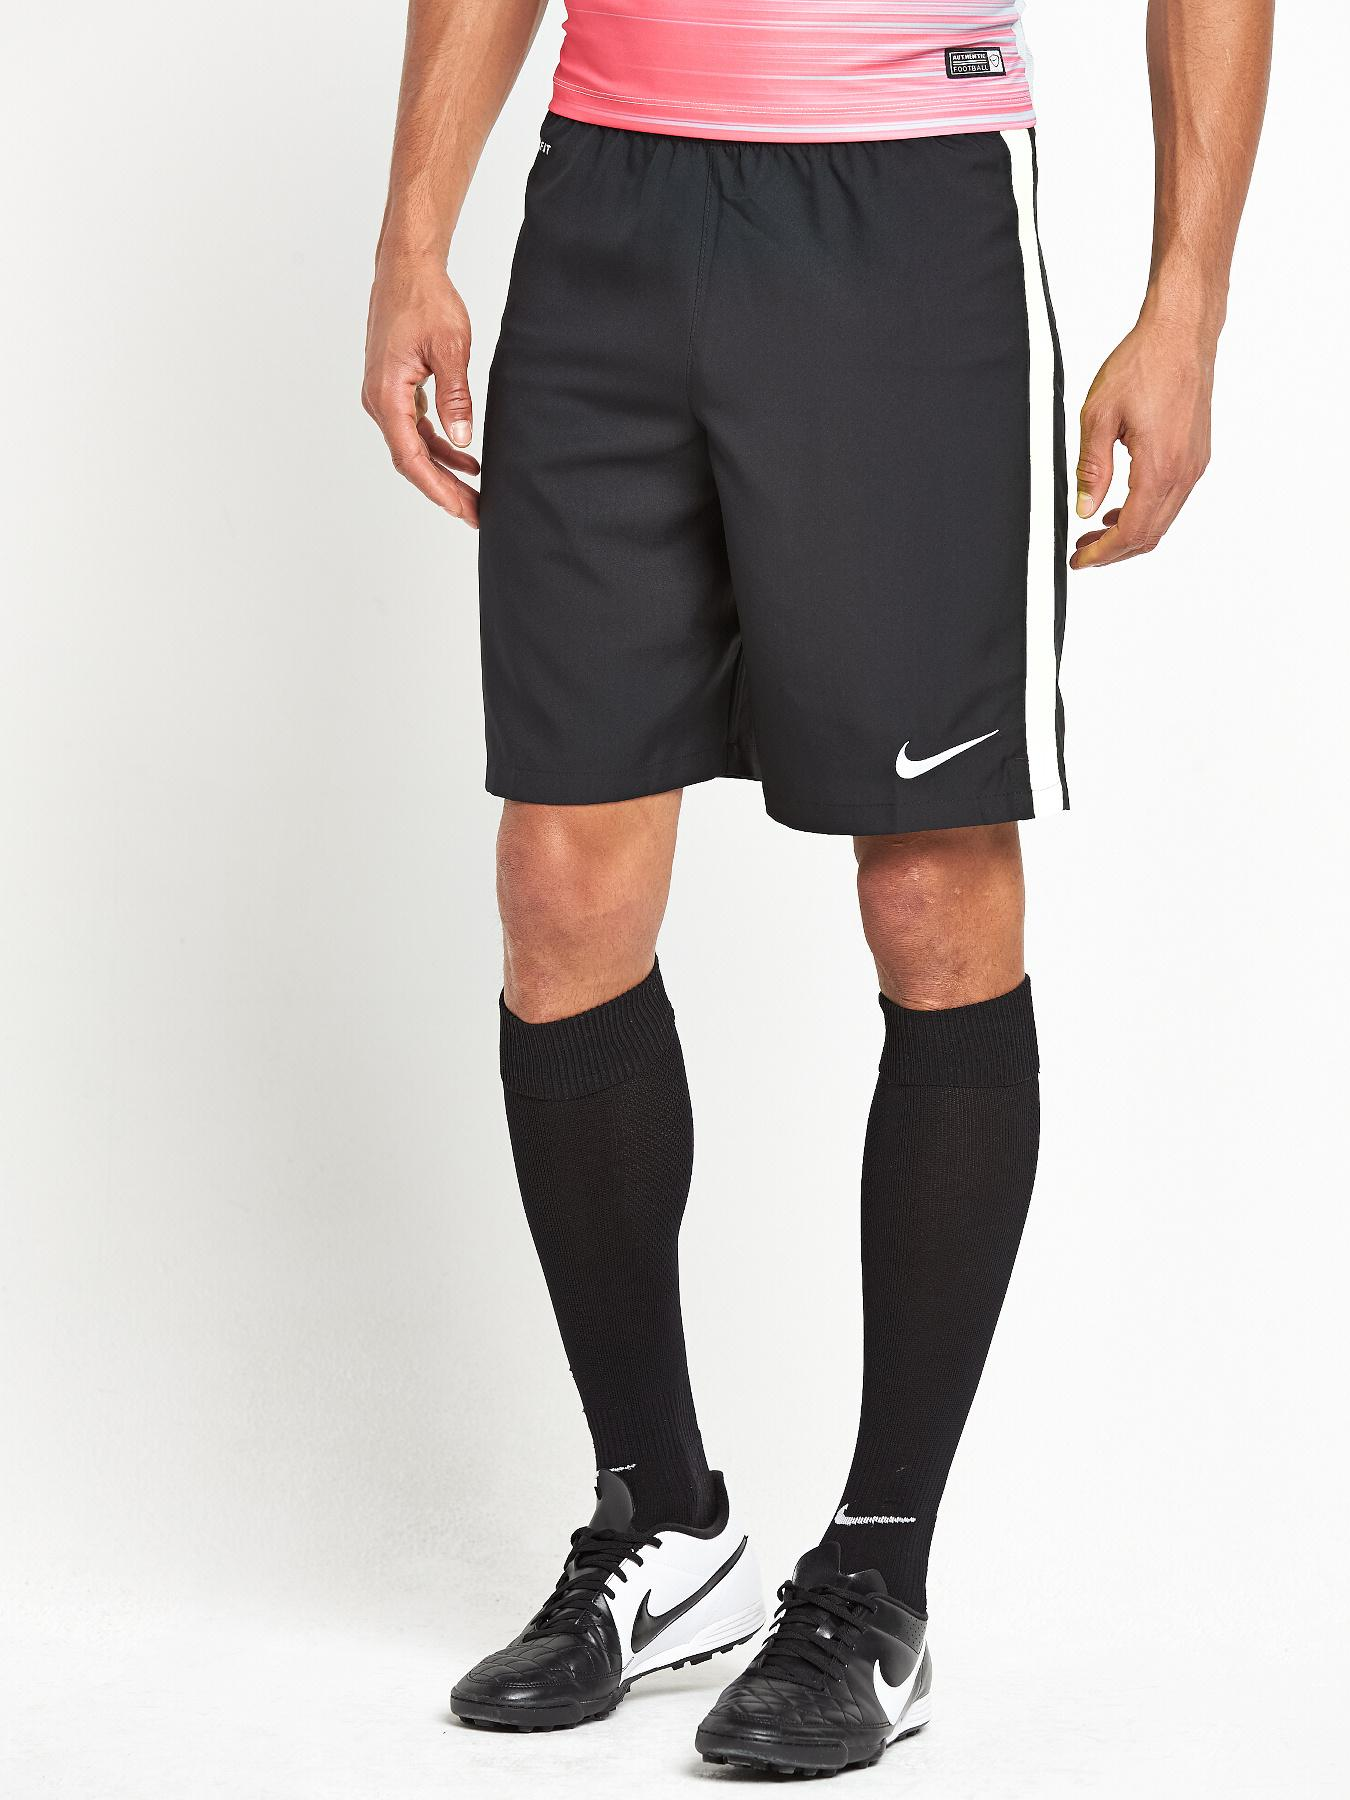 Nike Mens Squad Strike Longer Woven Shorts - Black, Black at Very, from Littlewoods